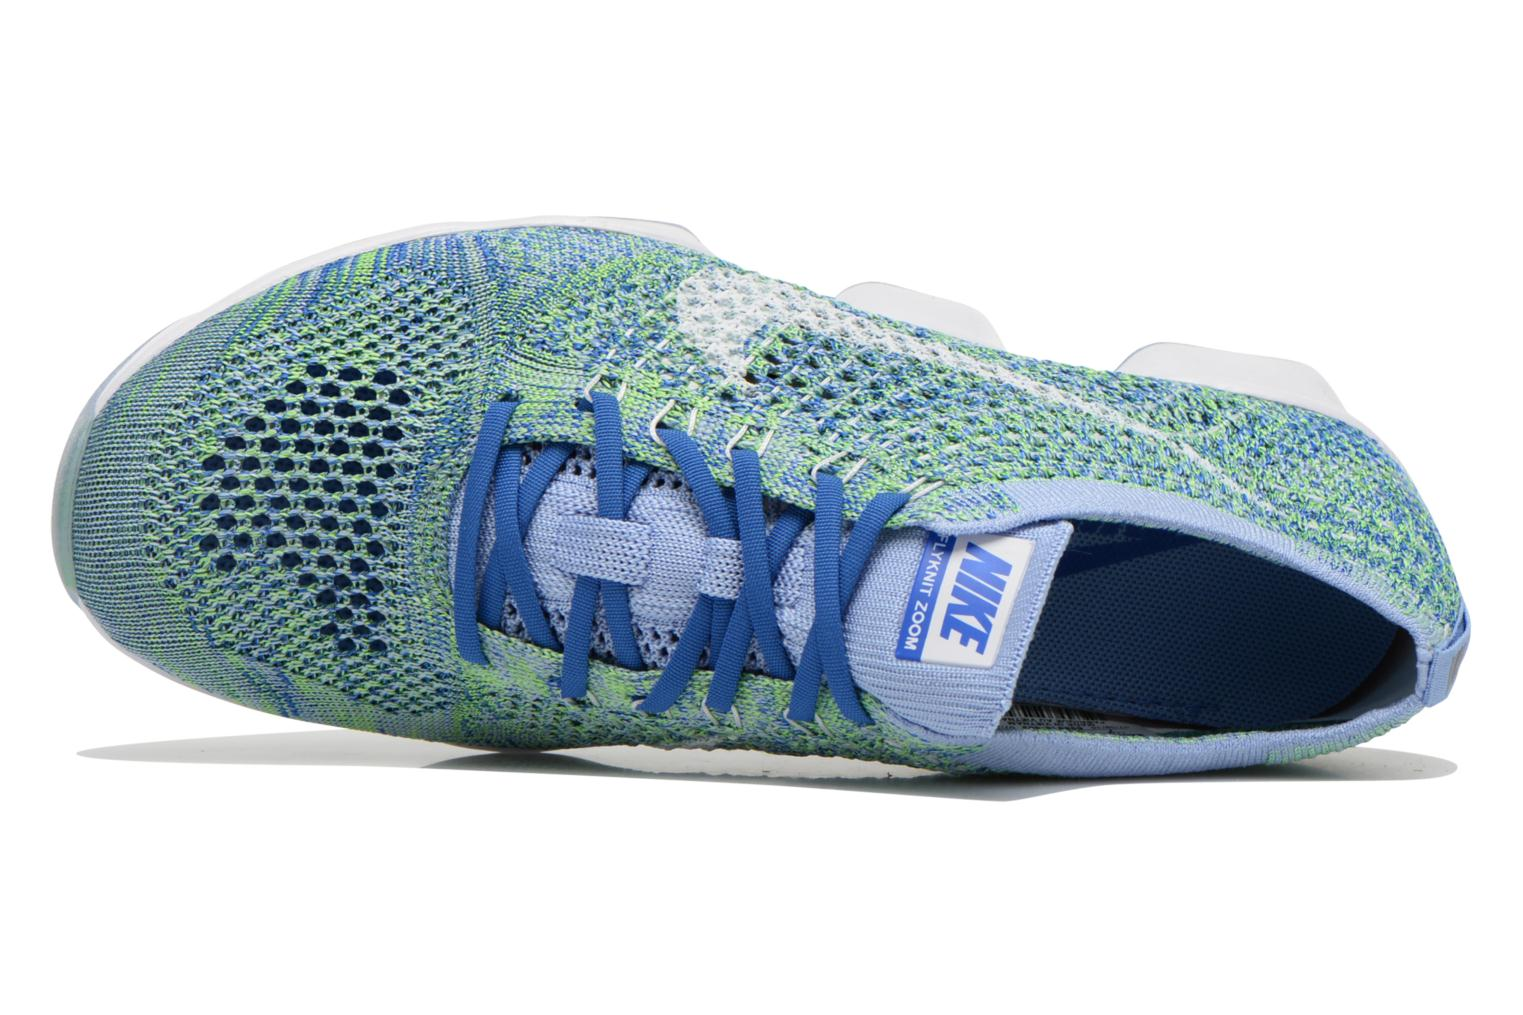 Wmns Nike Flyknit Zoom Agility Chalk Blue/White-Racer Blue